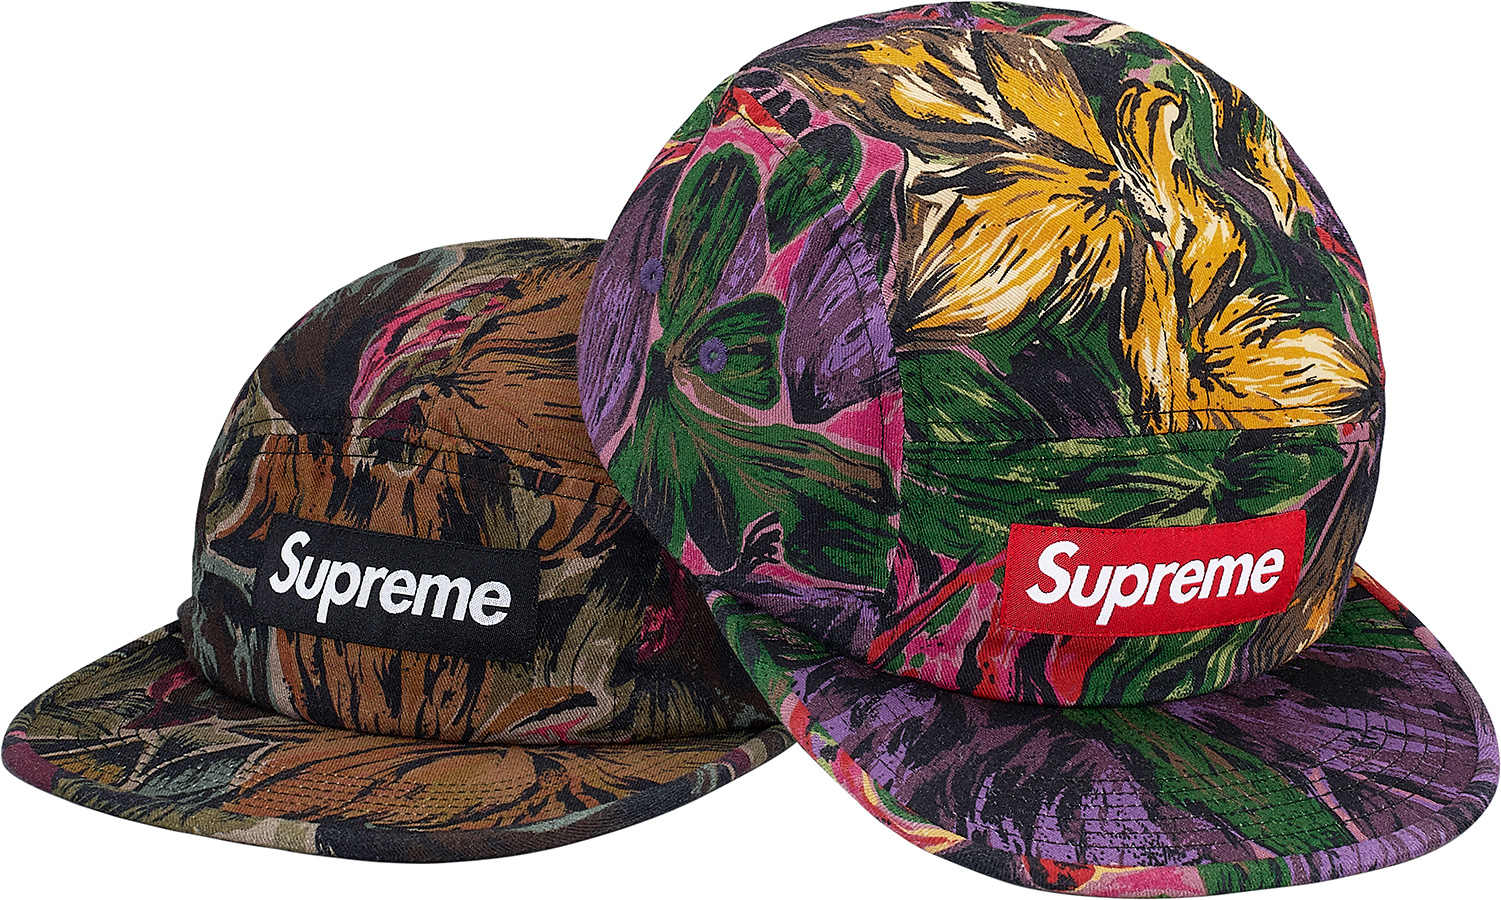 ... promo code for supreme painted floral camp cap 68f97 2b580 1d8b80d350b